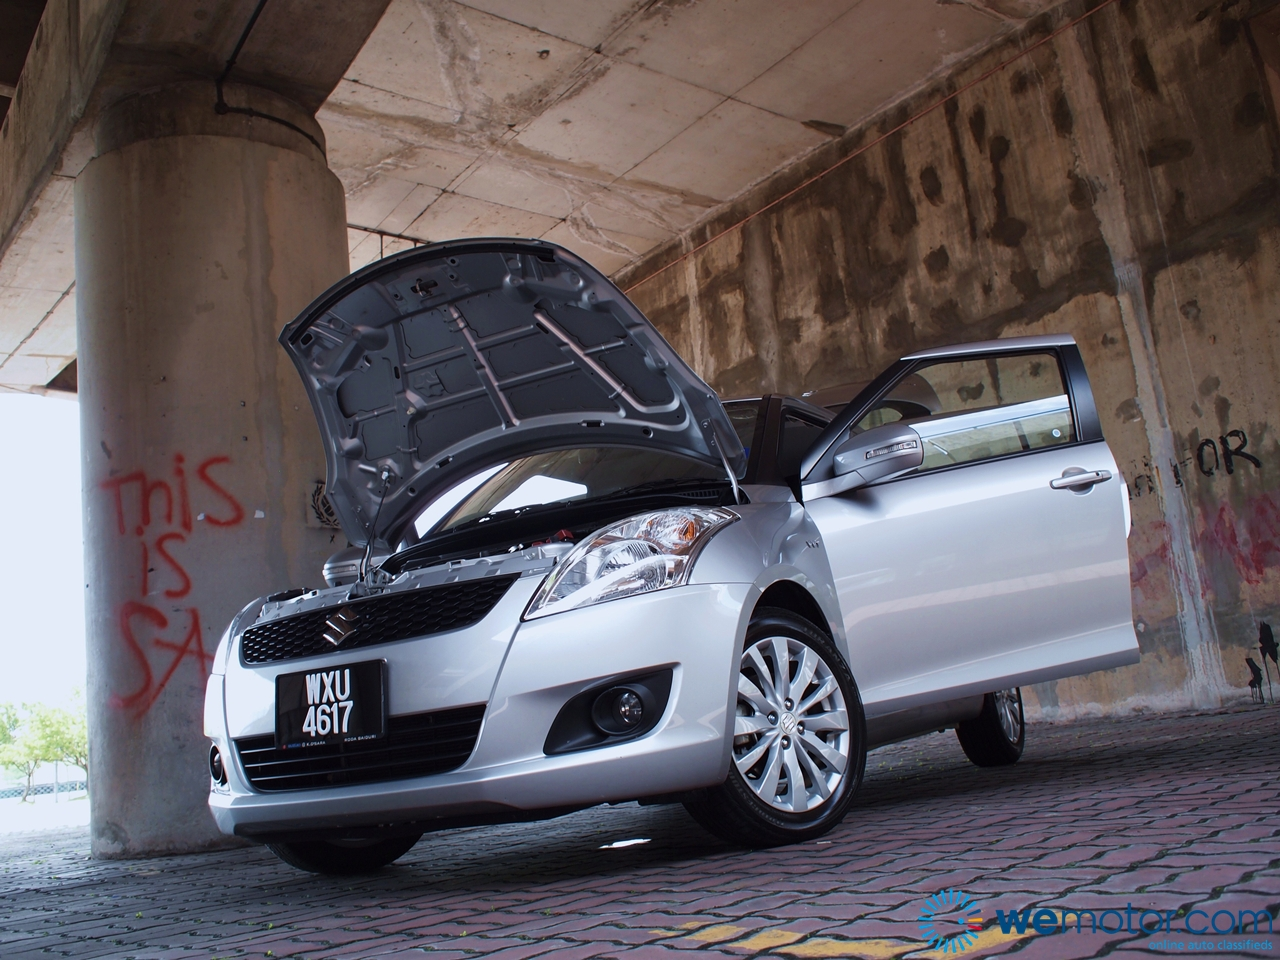 2013 Suzuki Swift 062